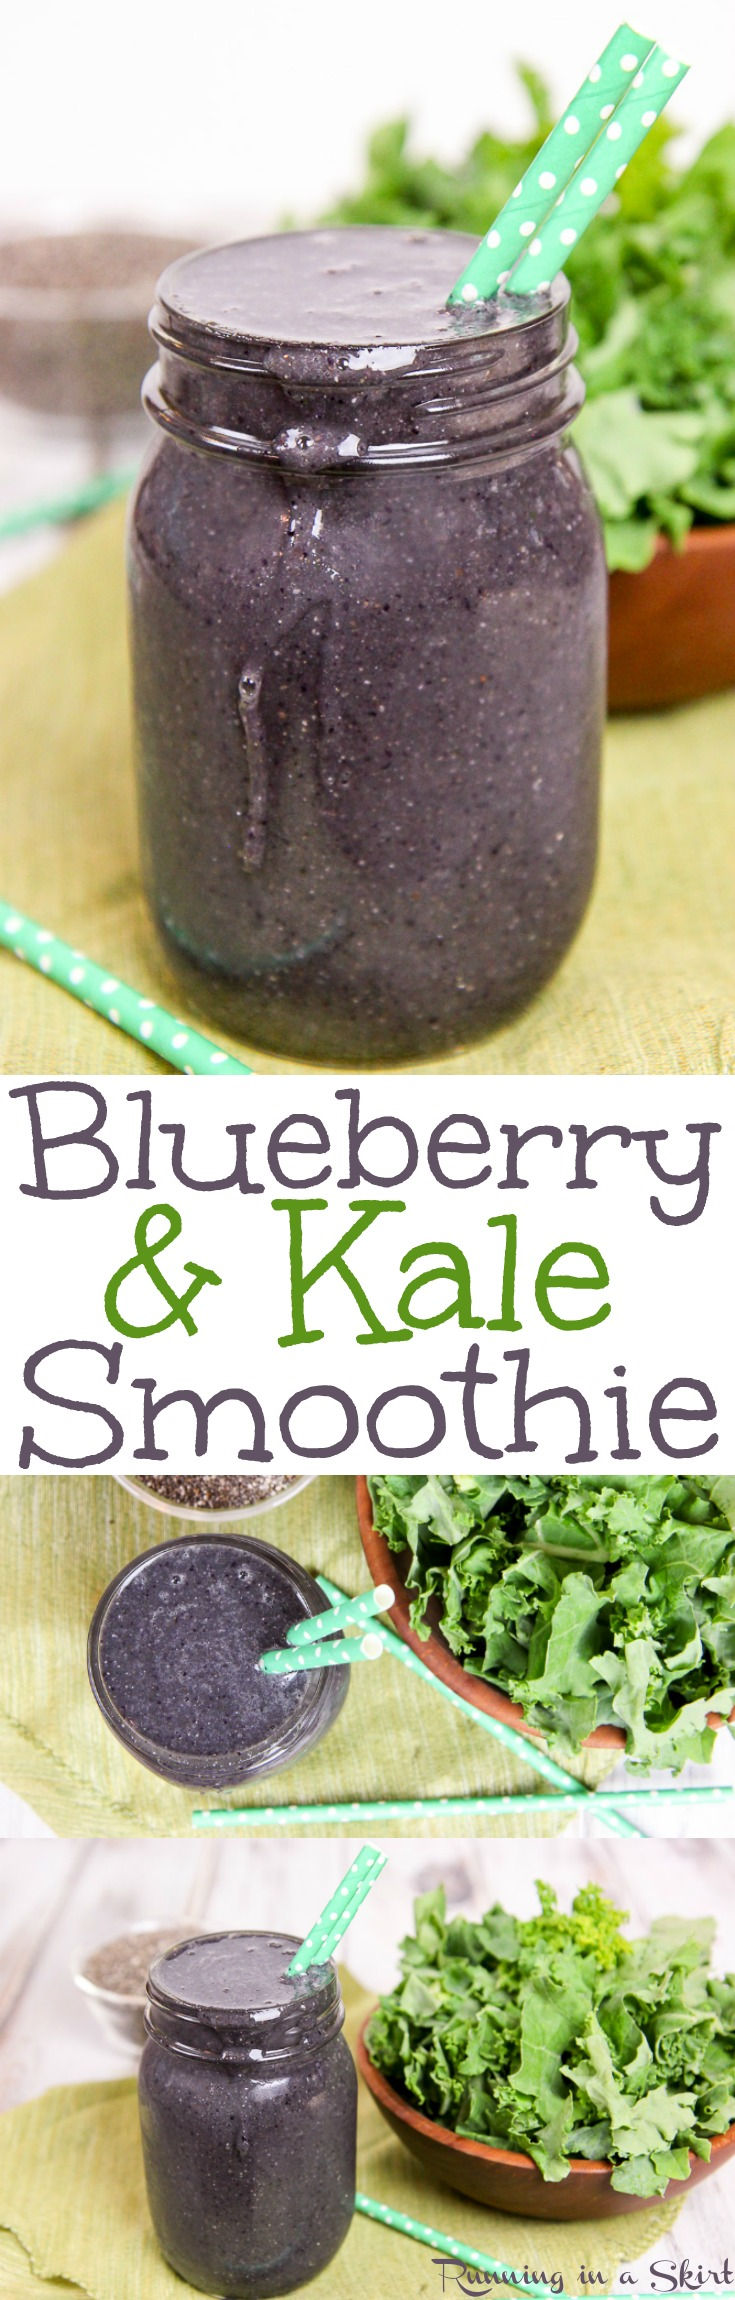 Kale and Blueberry Smoothie recipe.  A sweet green smoothie with chia seeds and greens.  Includes a frozen banana to make it creamy.  Perfect for breakfast or a snack.  Healthy, fast, vegan, gluten free and clean eating! / Running in a Skirt via @juliewunder